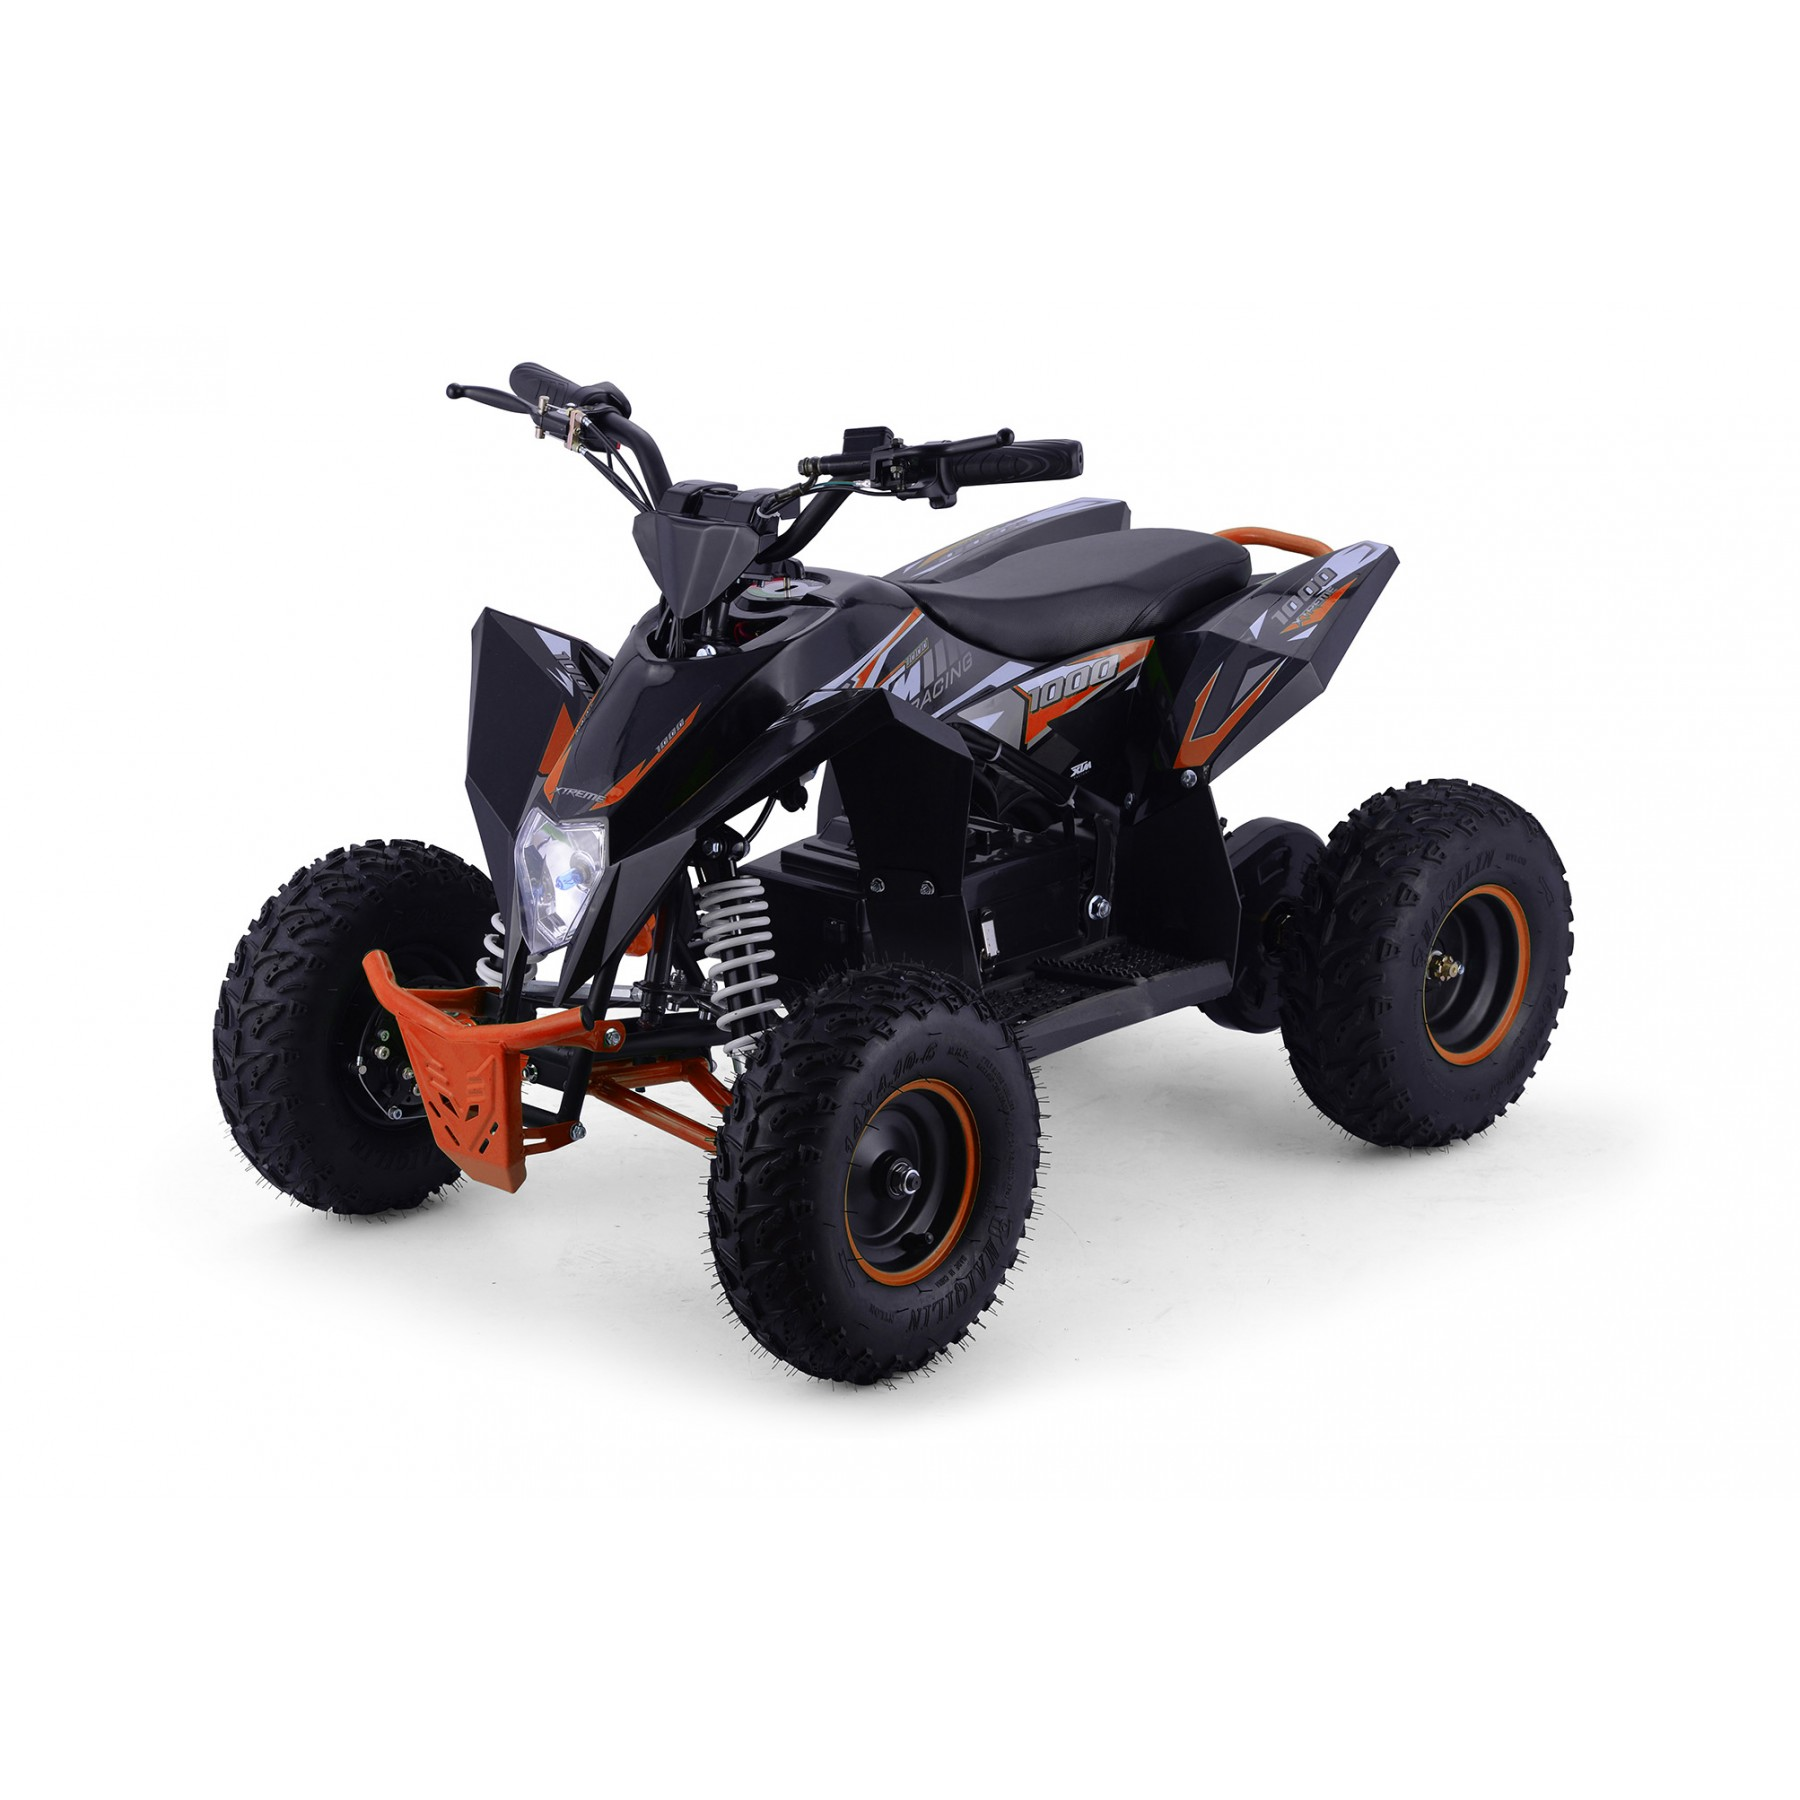 XTM RACING 48v 1300w LITHIUM QUAD BIKE BLACK ORANGE